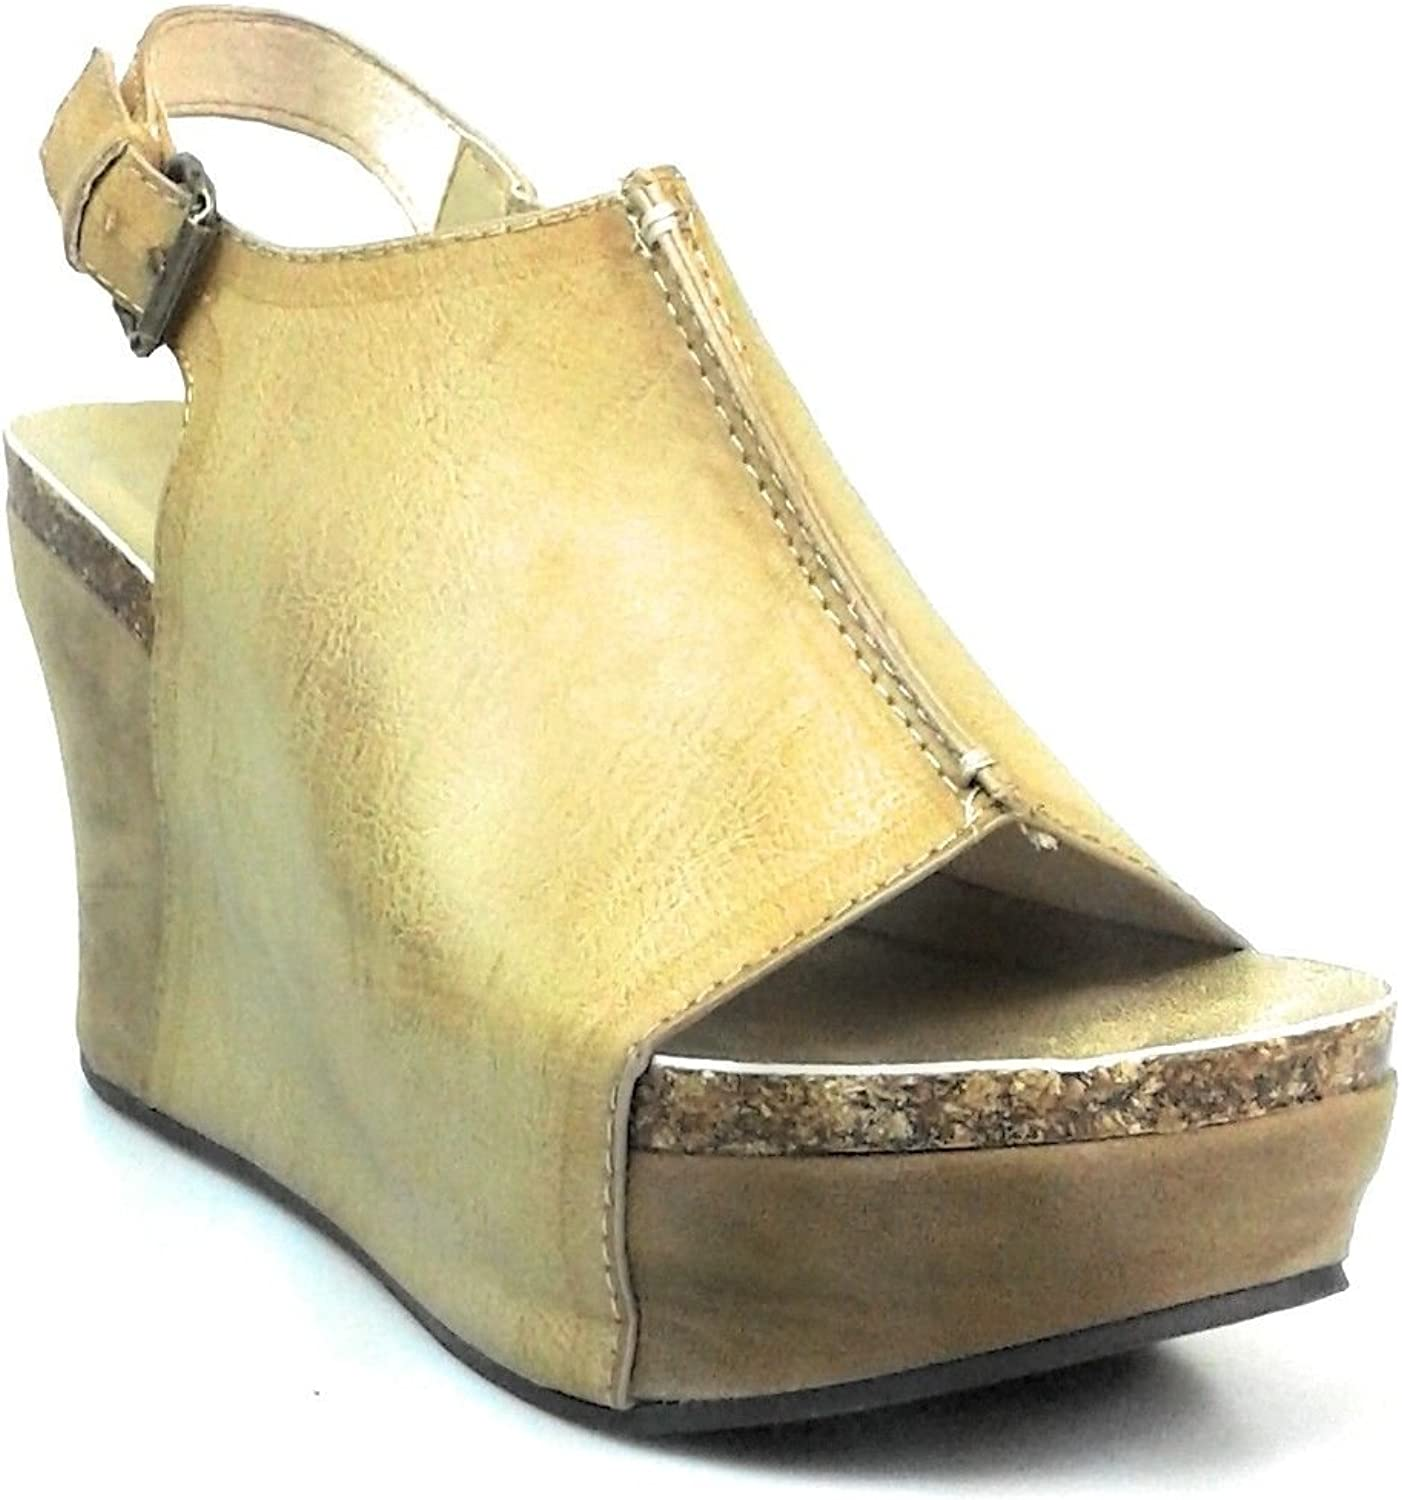 Pierre Dumas Hester-14 Women Low Wedge With An Adjustable Side Buckle Sandals